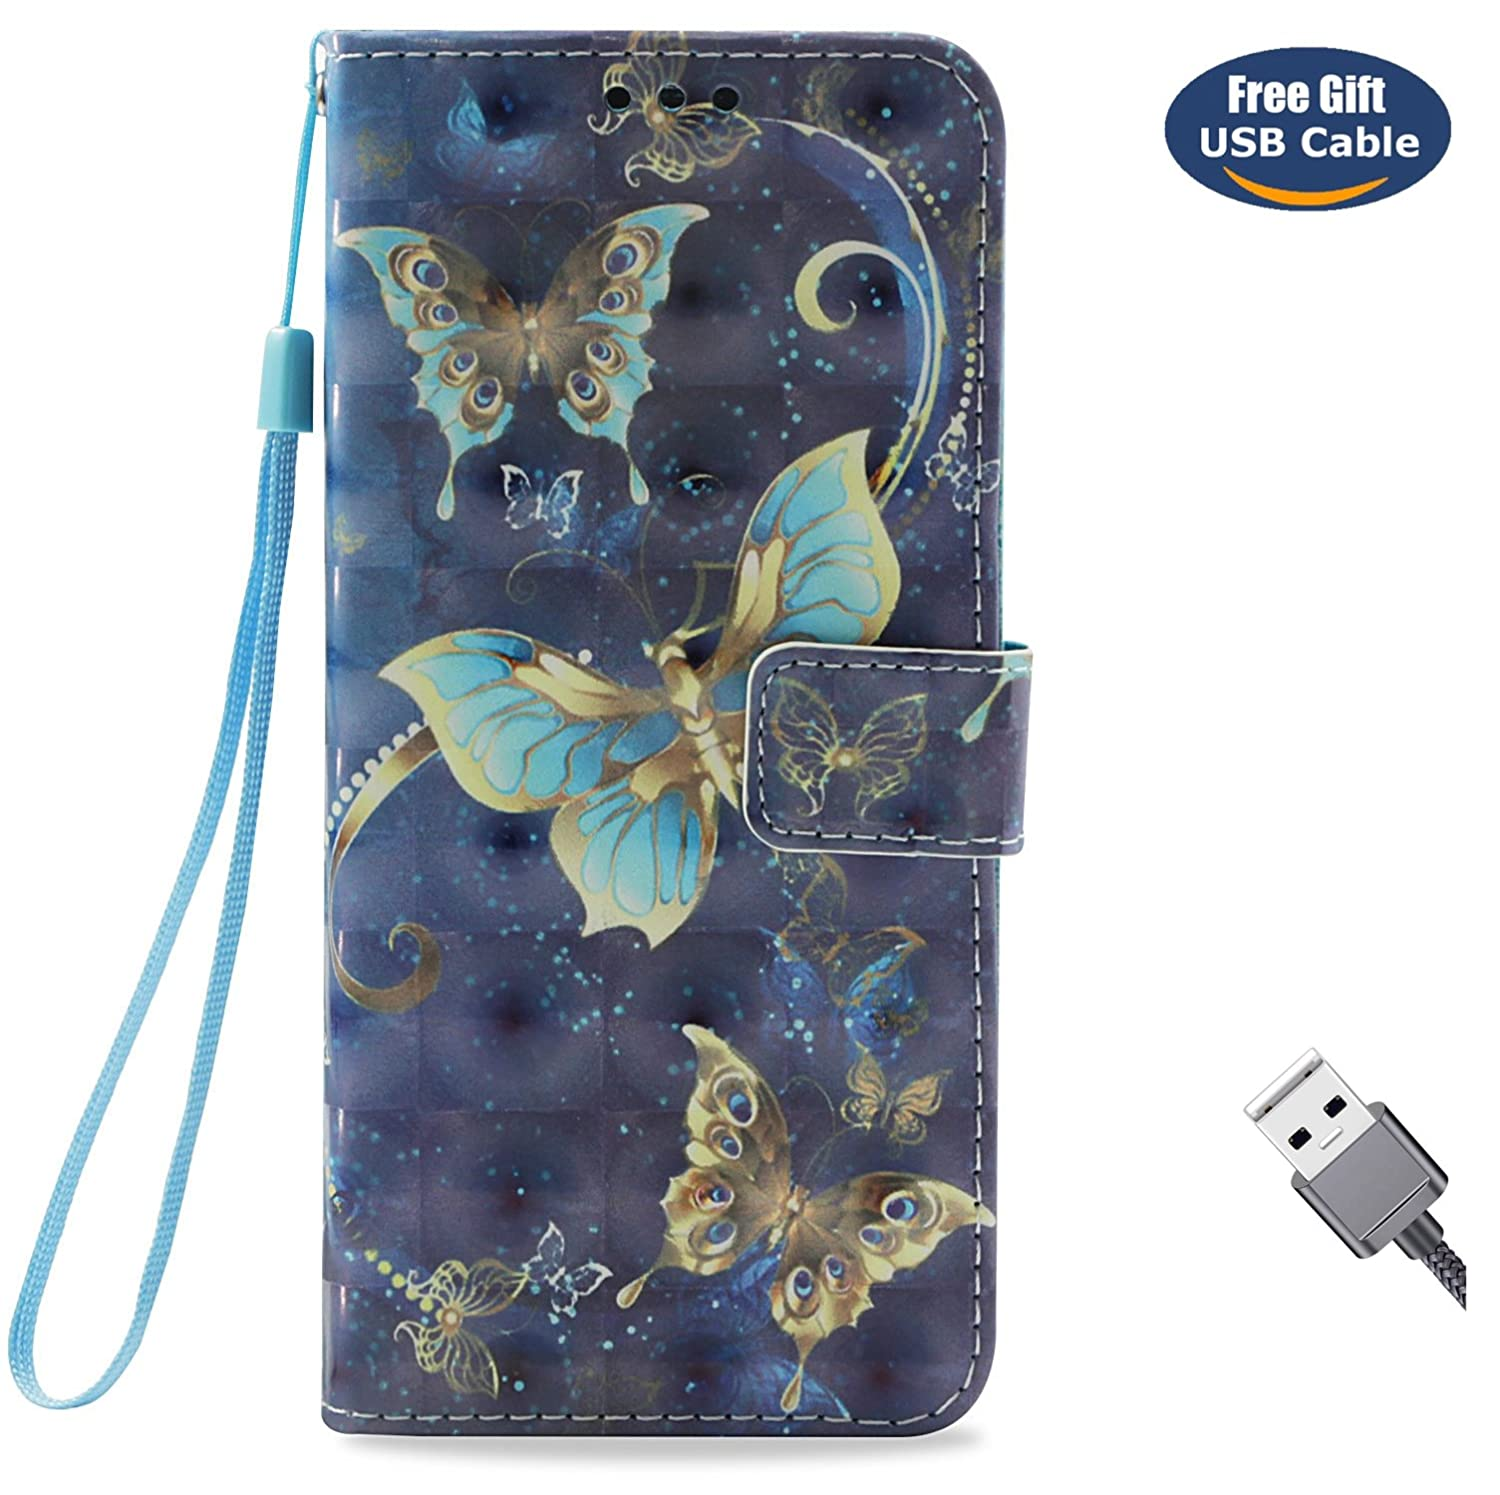 Aireratze Huawei P20 Pro case,Huawei P20 Pro cover, Soft PU Leather [Glitter 3D Ultra Smooth Surface Cute Case Slim Flip Skin Cover for Huawei P20 Pro(Navy Blue Butterfly)+USB cable q2018912cai20009